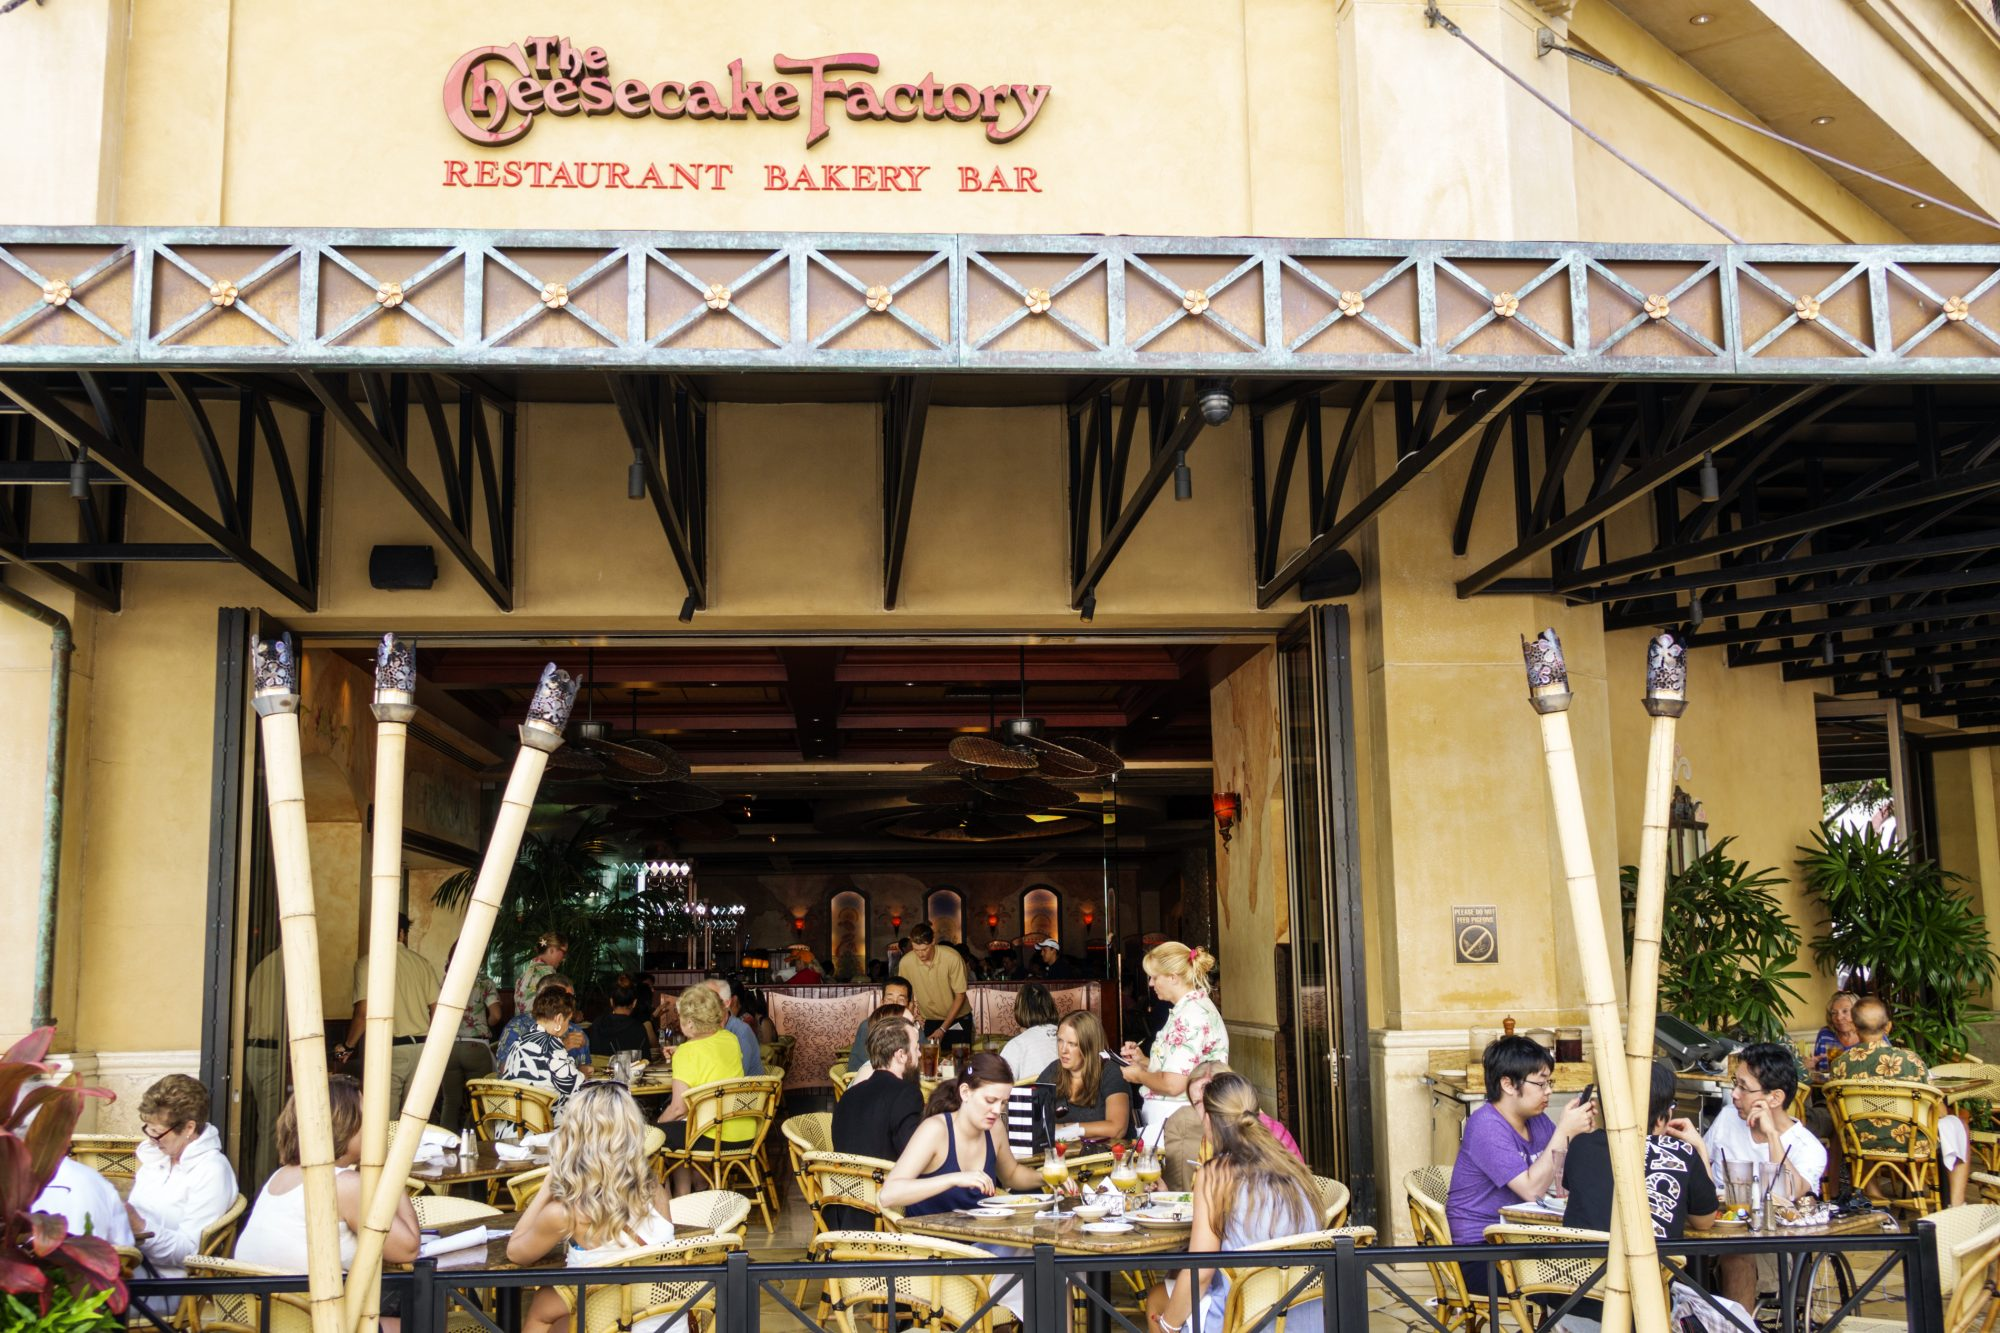 5 Clever Ways to Save Money at the Cheesecake Factory, According to a Former Server